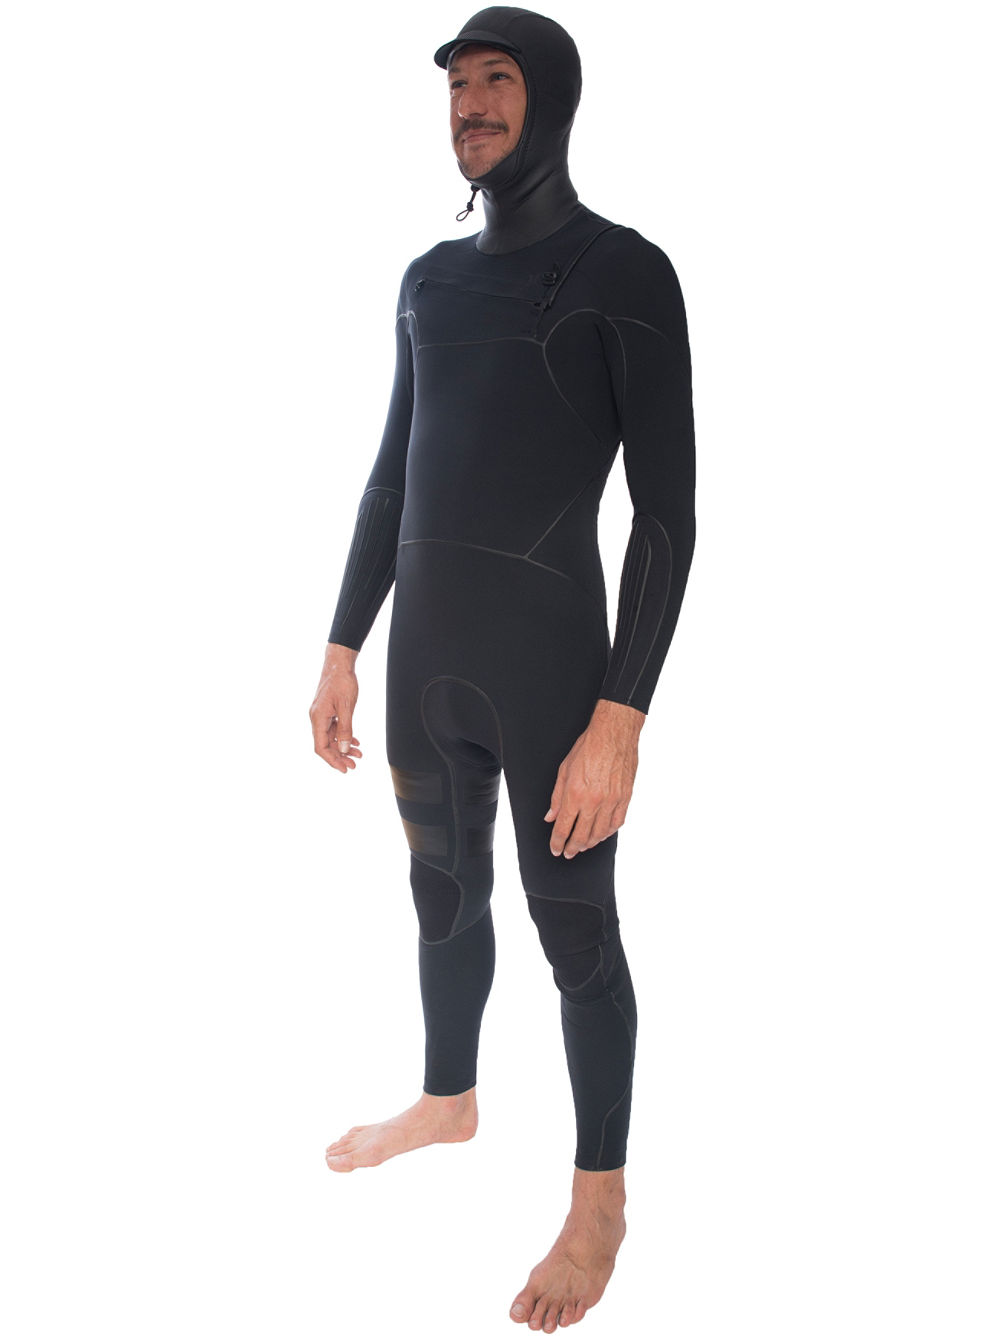 Advantage Max 5/3 Hooded Wetsuit